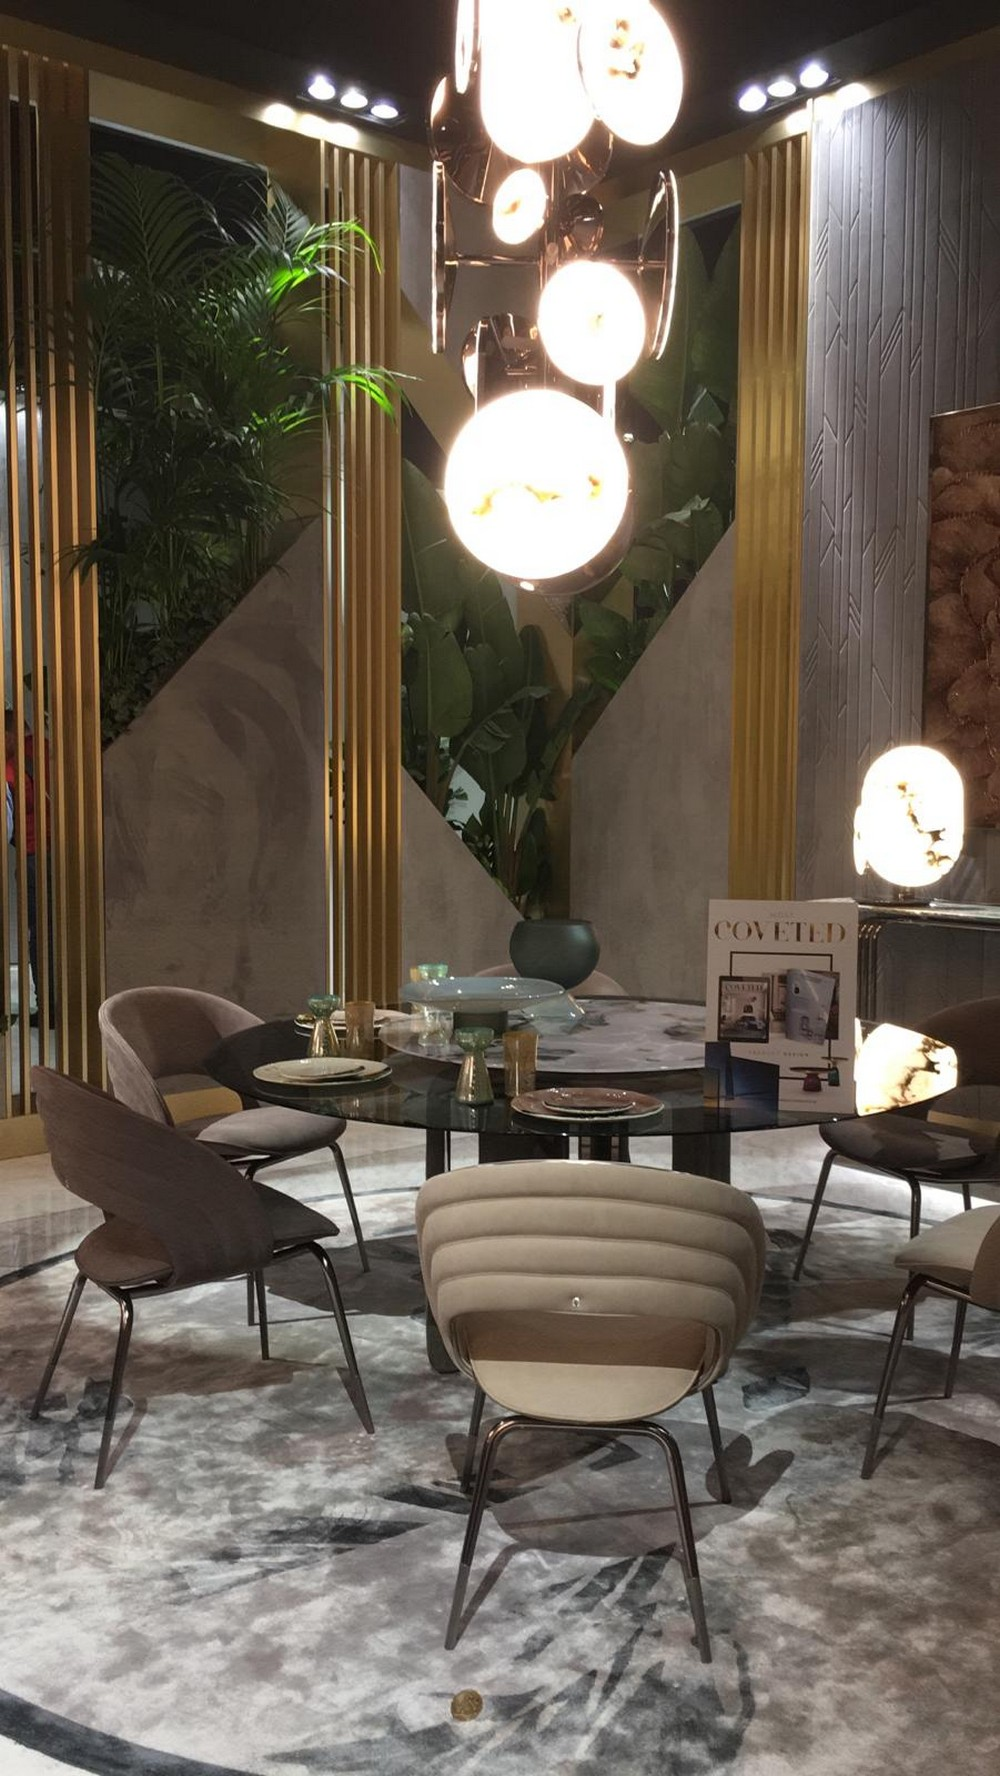 CovetED Awards Highlights The Best Of Salone Del Mobile Milano 2019 coveted awards CovetED Awards Highlights The Best Of Salone Del Mobile Milano 2019 CovetED Awards Highlights The Best Of Salone Del Mobile Milano 2019 10